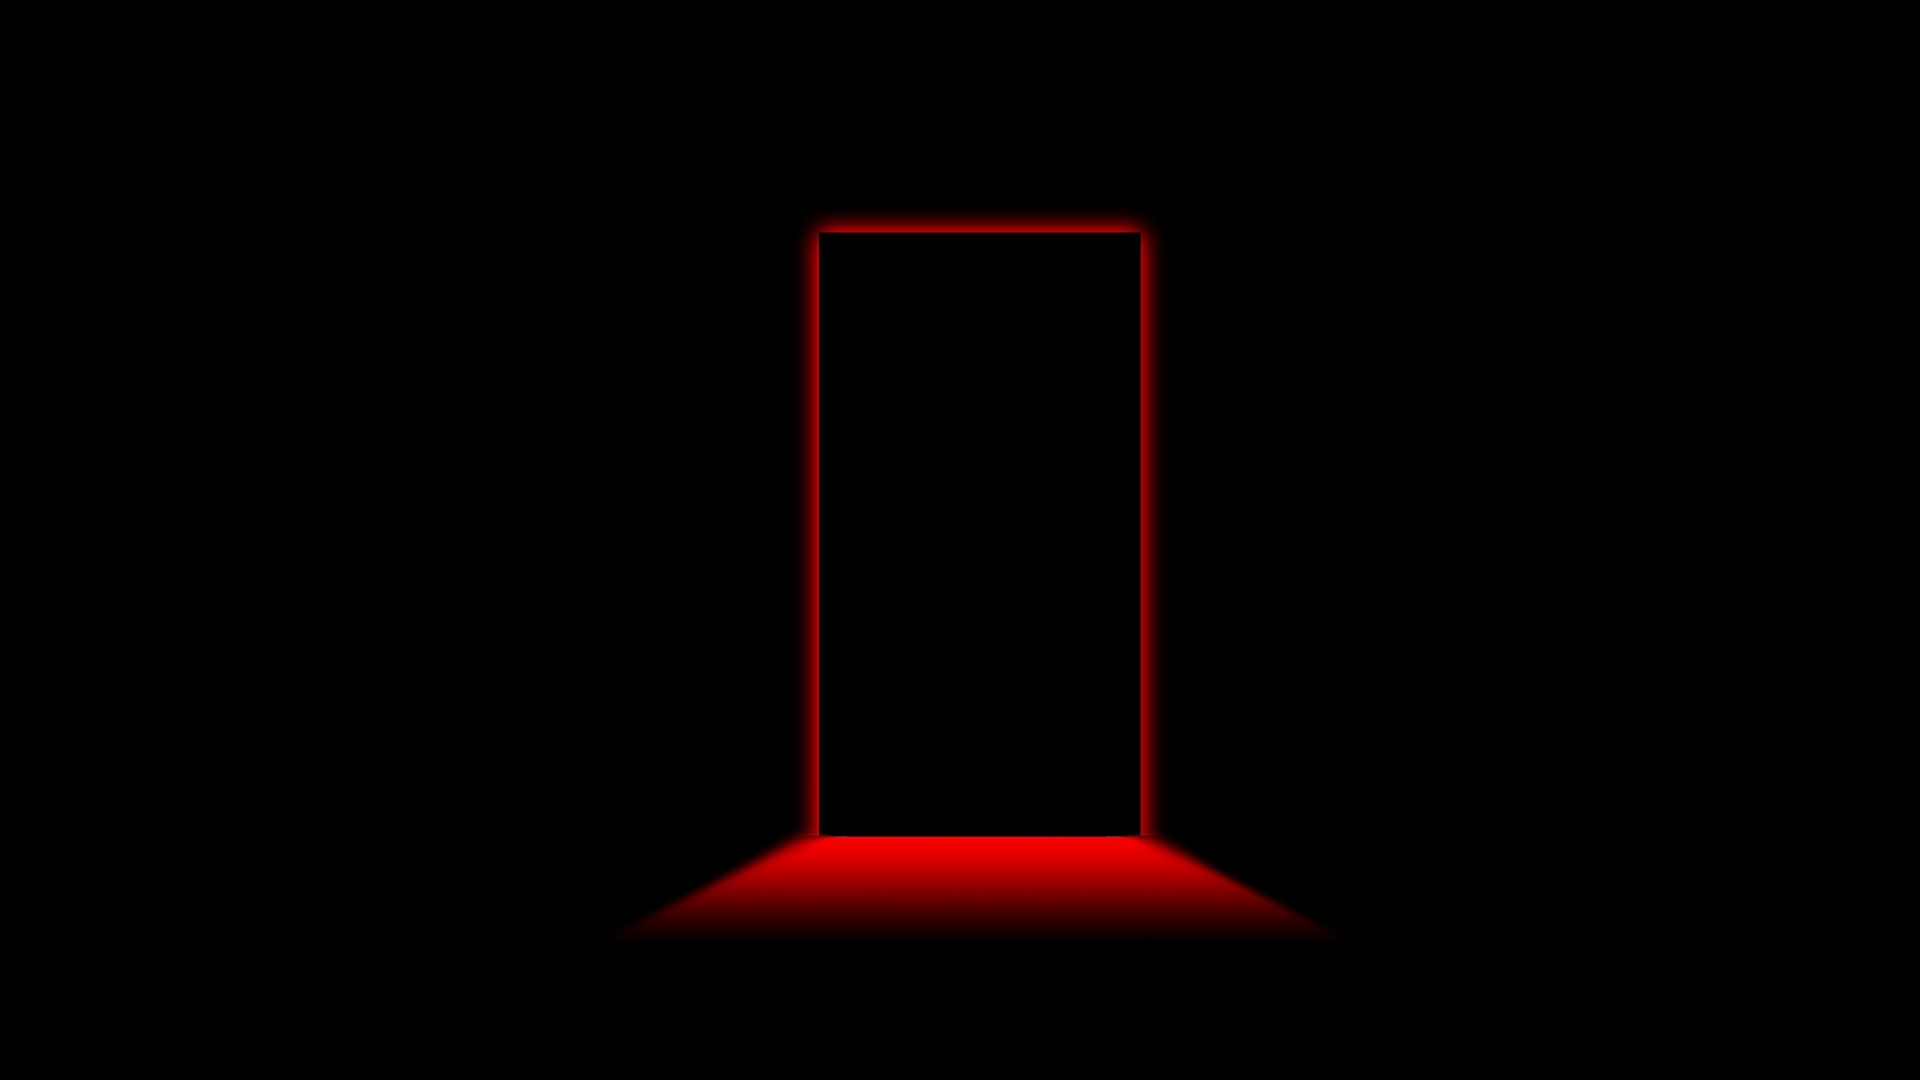 red black background hd - photo #46